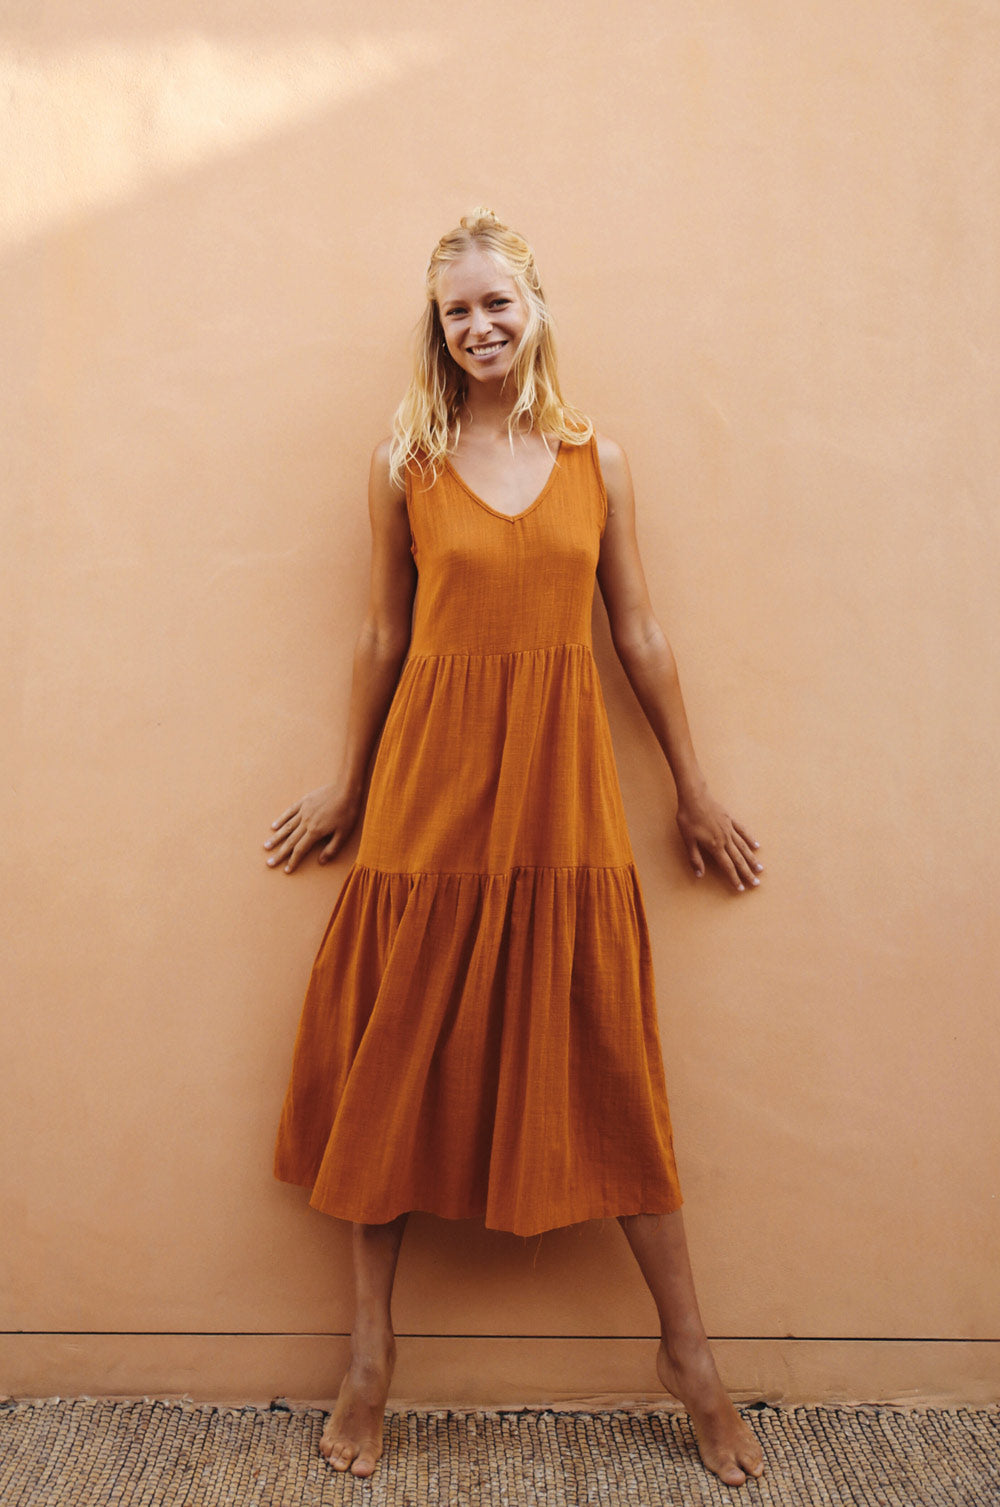 GREVILLEA Dress - ochre cotton